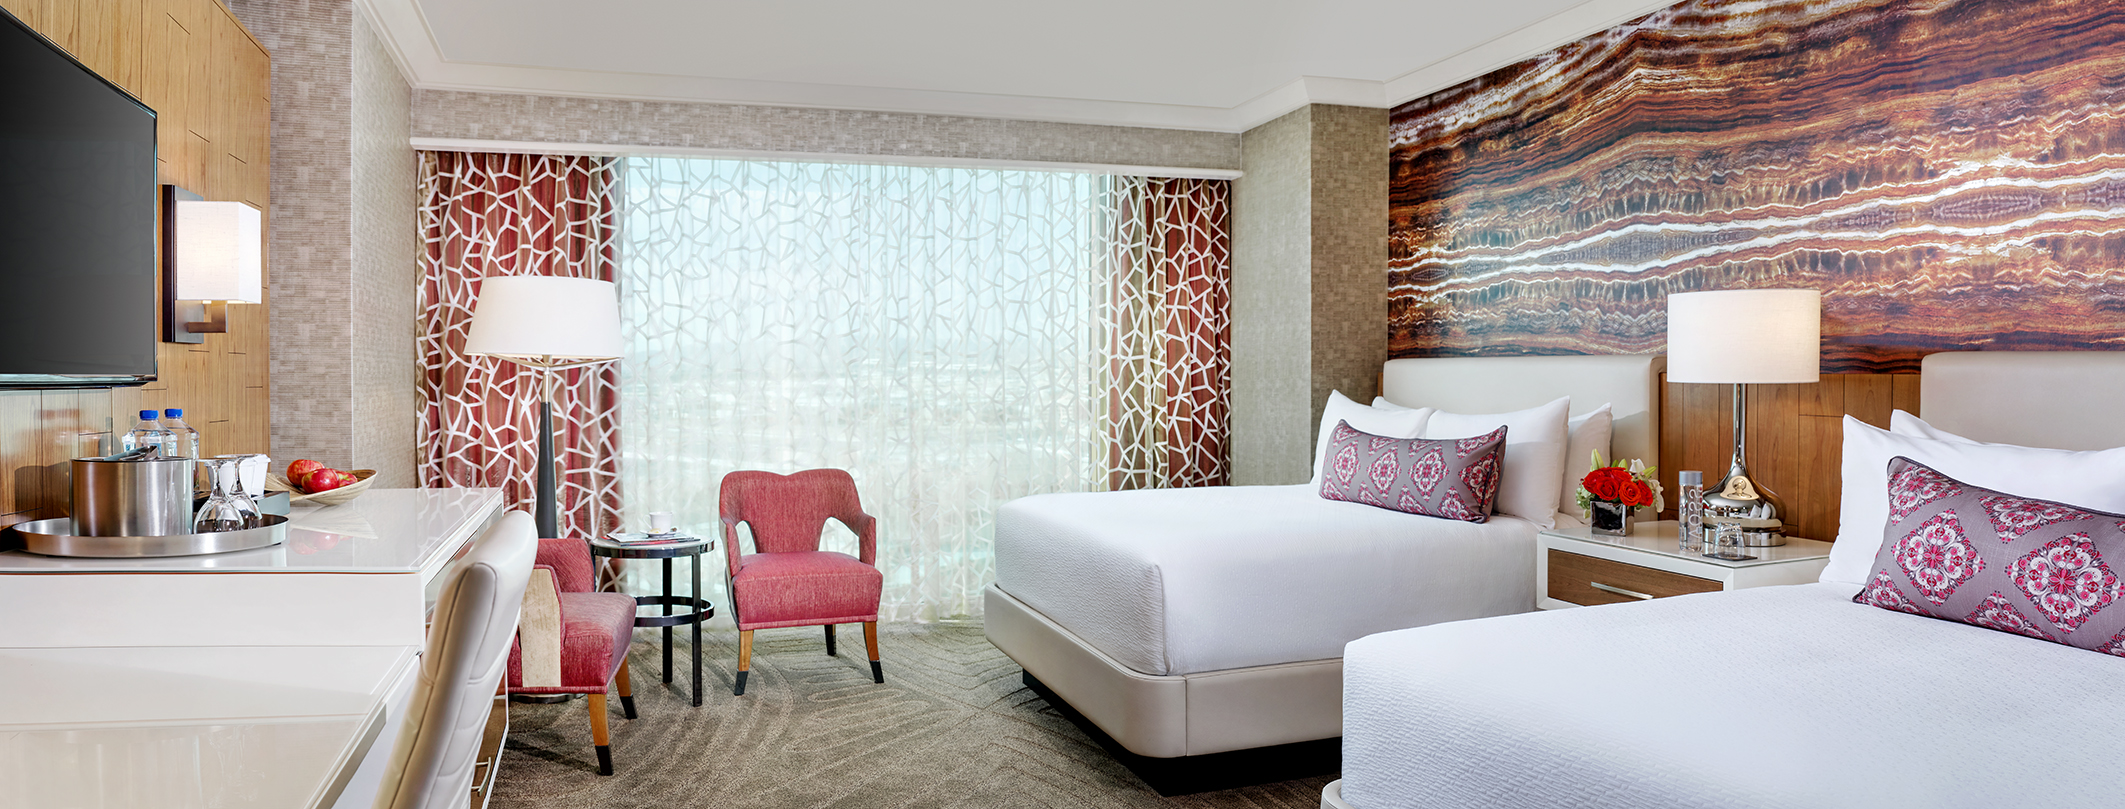 Remodeled Hotel Rooms